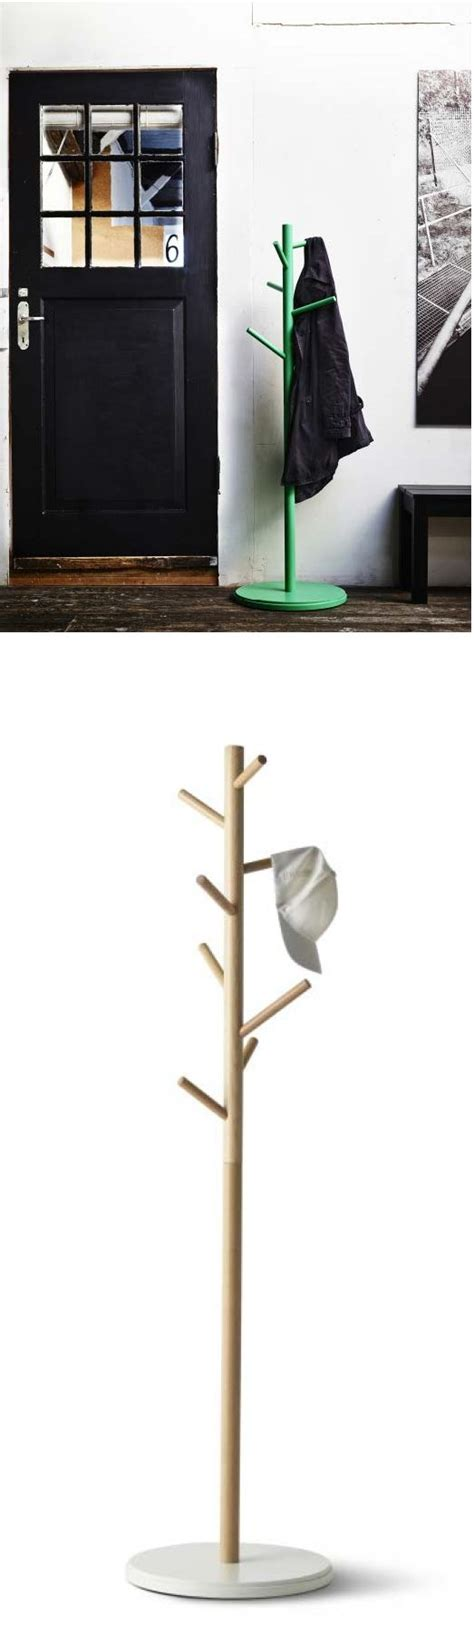 ikea coat racks ikea ps 2014 hat and coat stand quot i wanted to make an easy